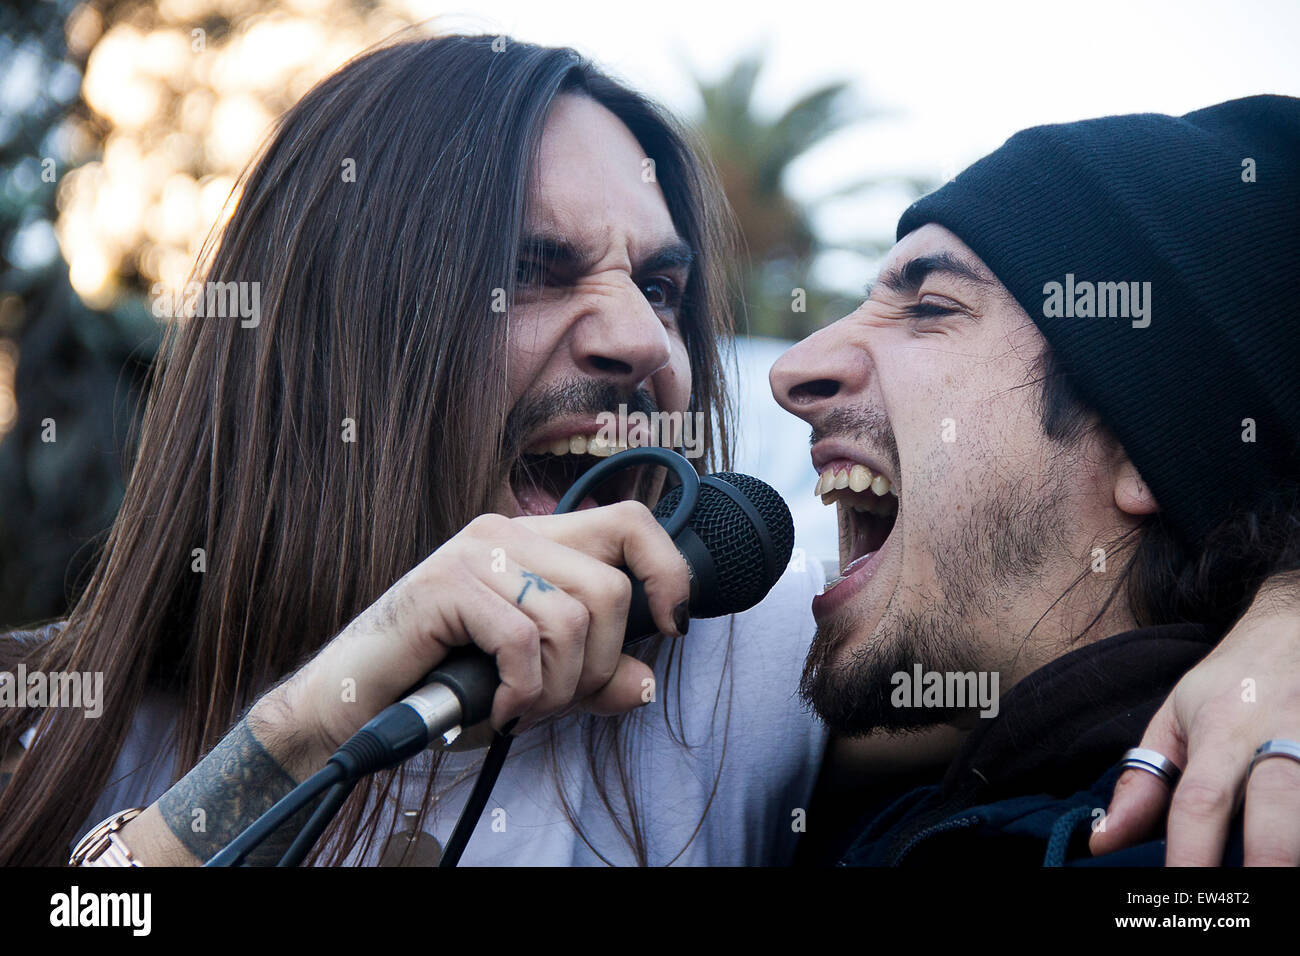 Signer rock and roll. angry rock Signer. Close-up. Grimace. grimacing with anger. Two  singers rock. scream. microphone - Stock Image